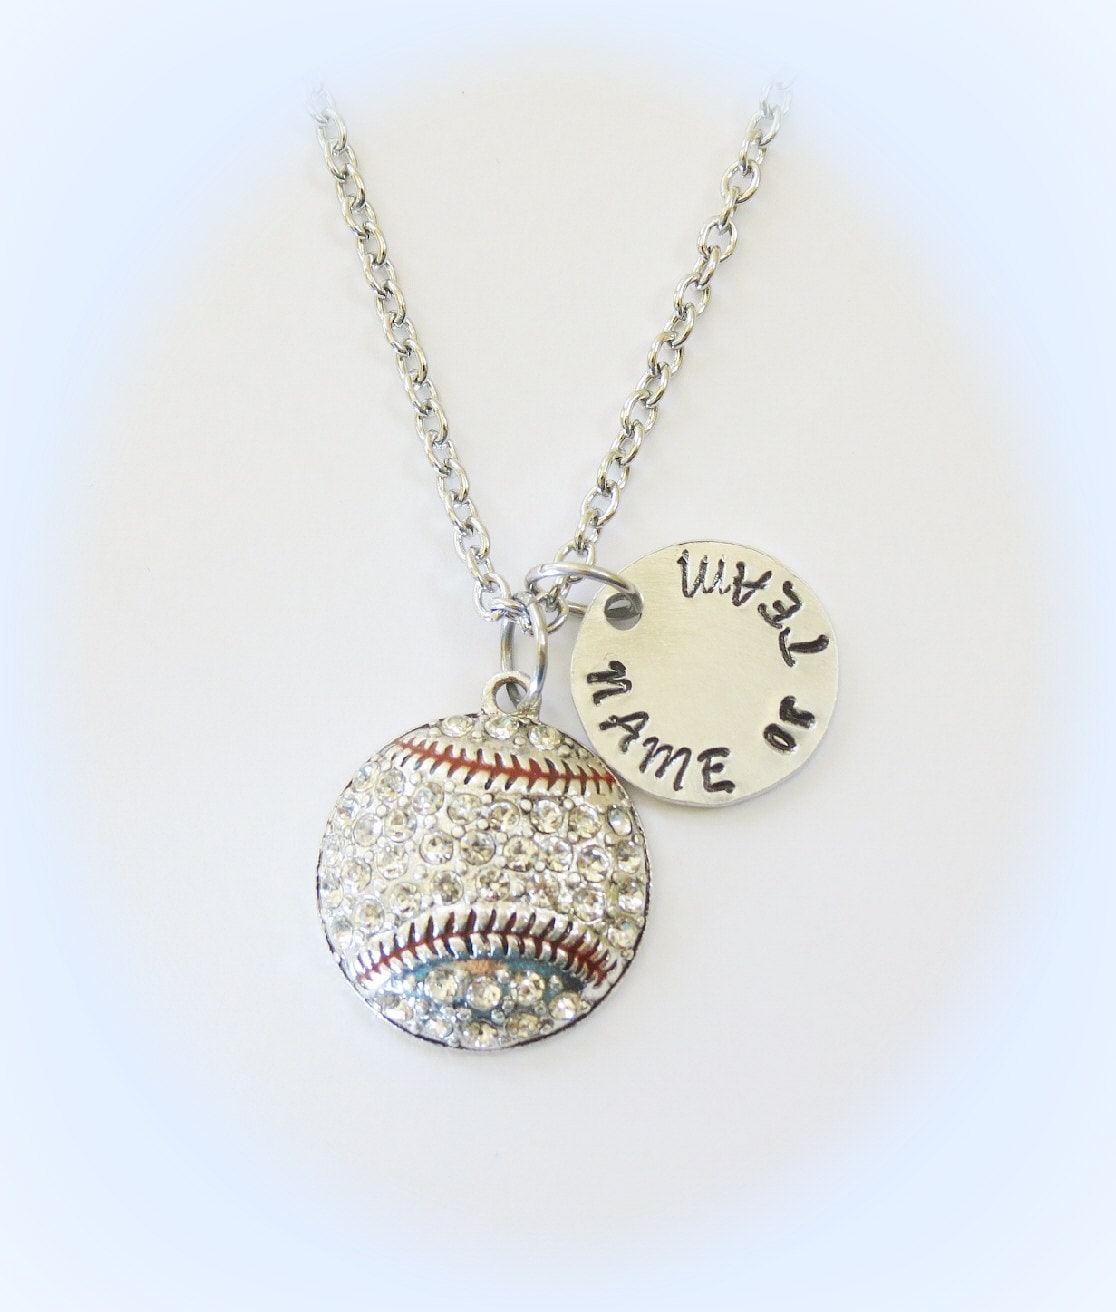 skyrim little i softball love pendant necklace league fan shopping player jewelry women heart baseball products gift